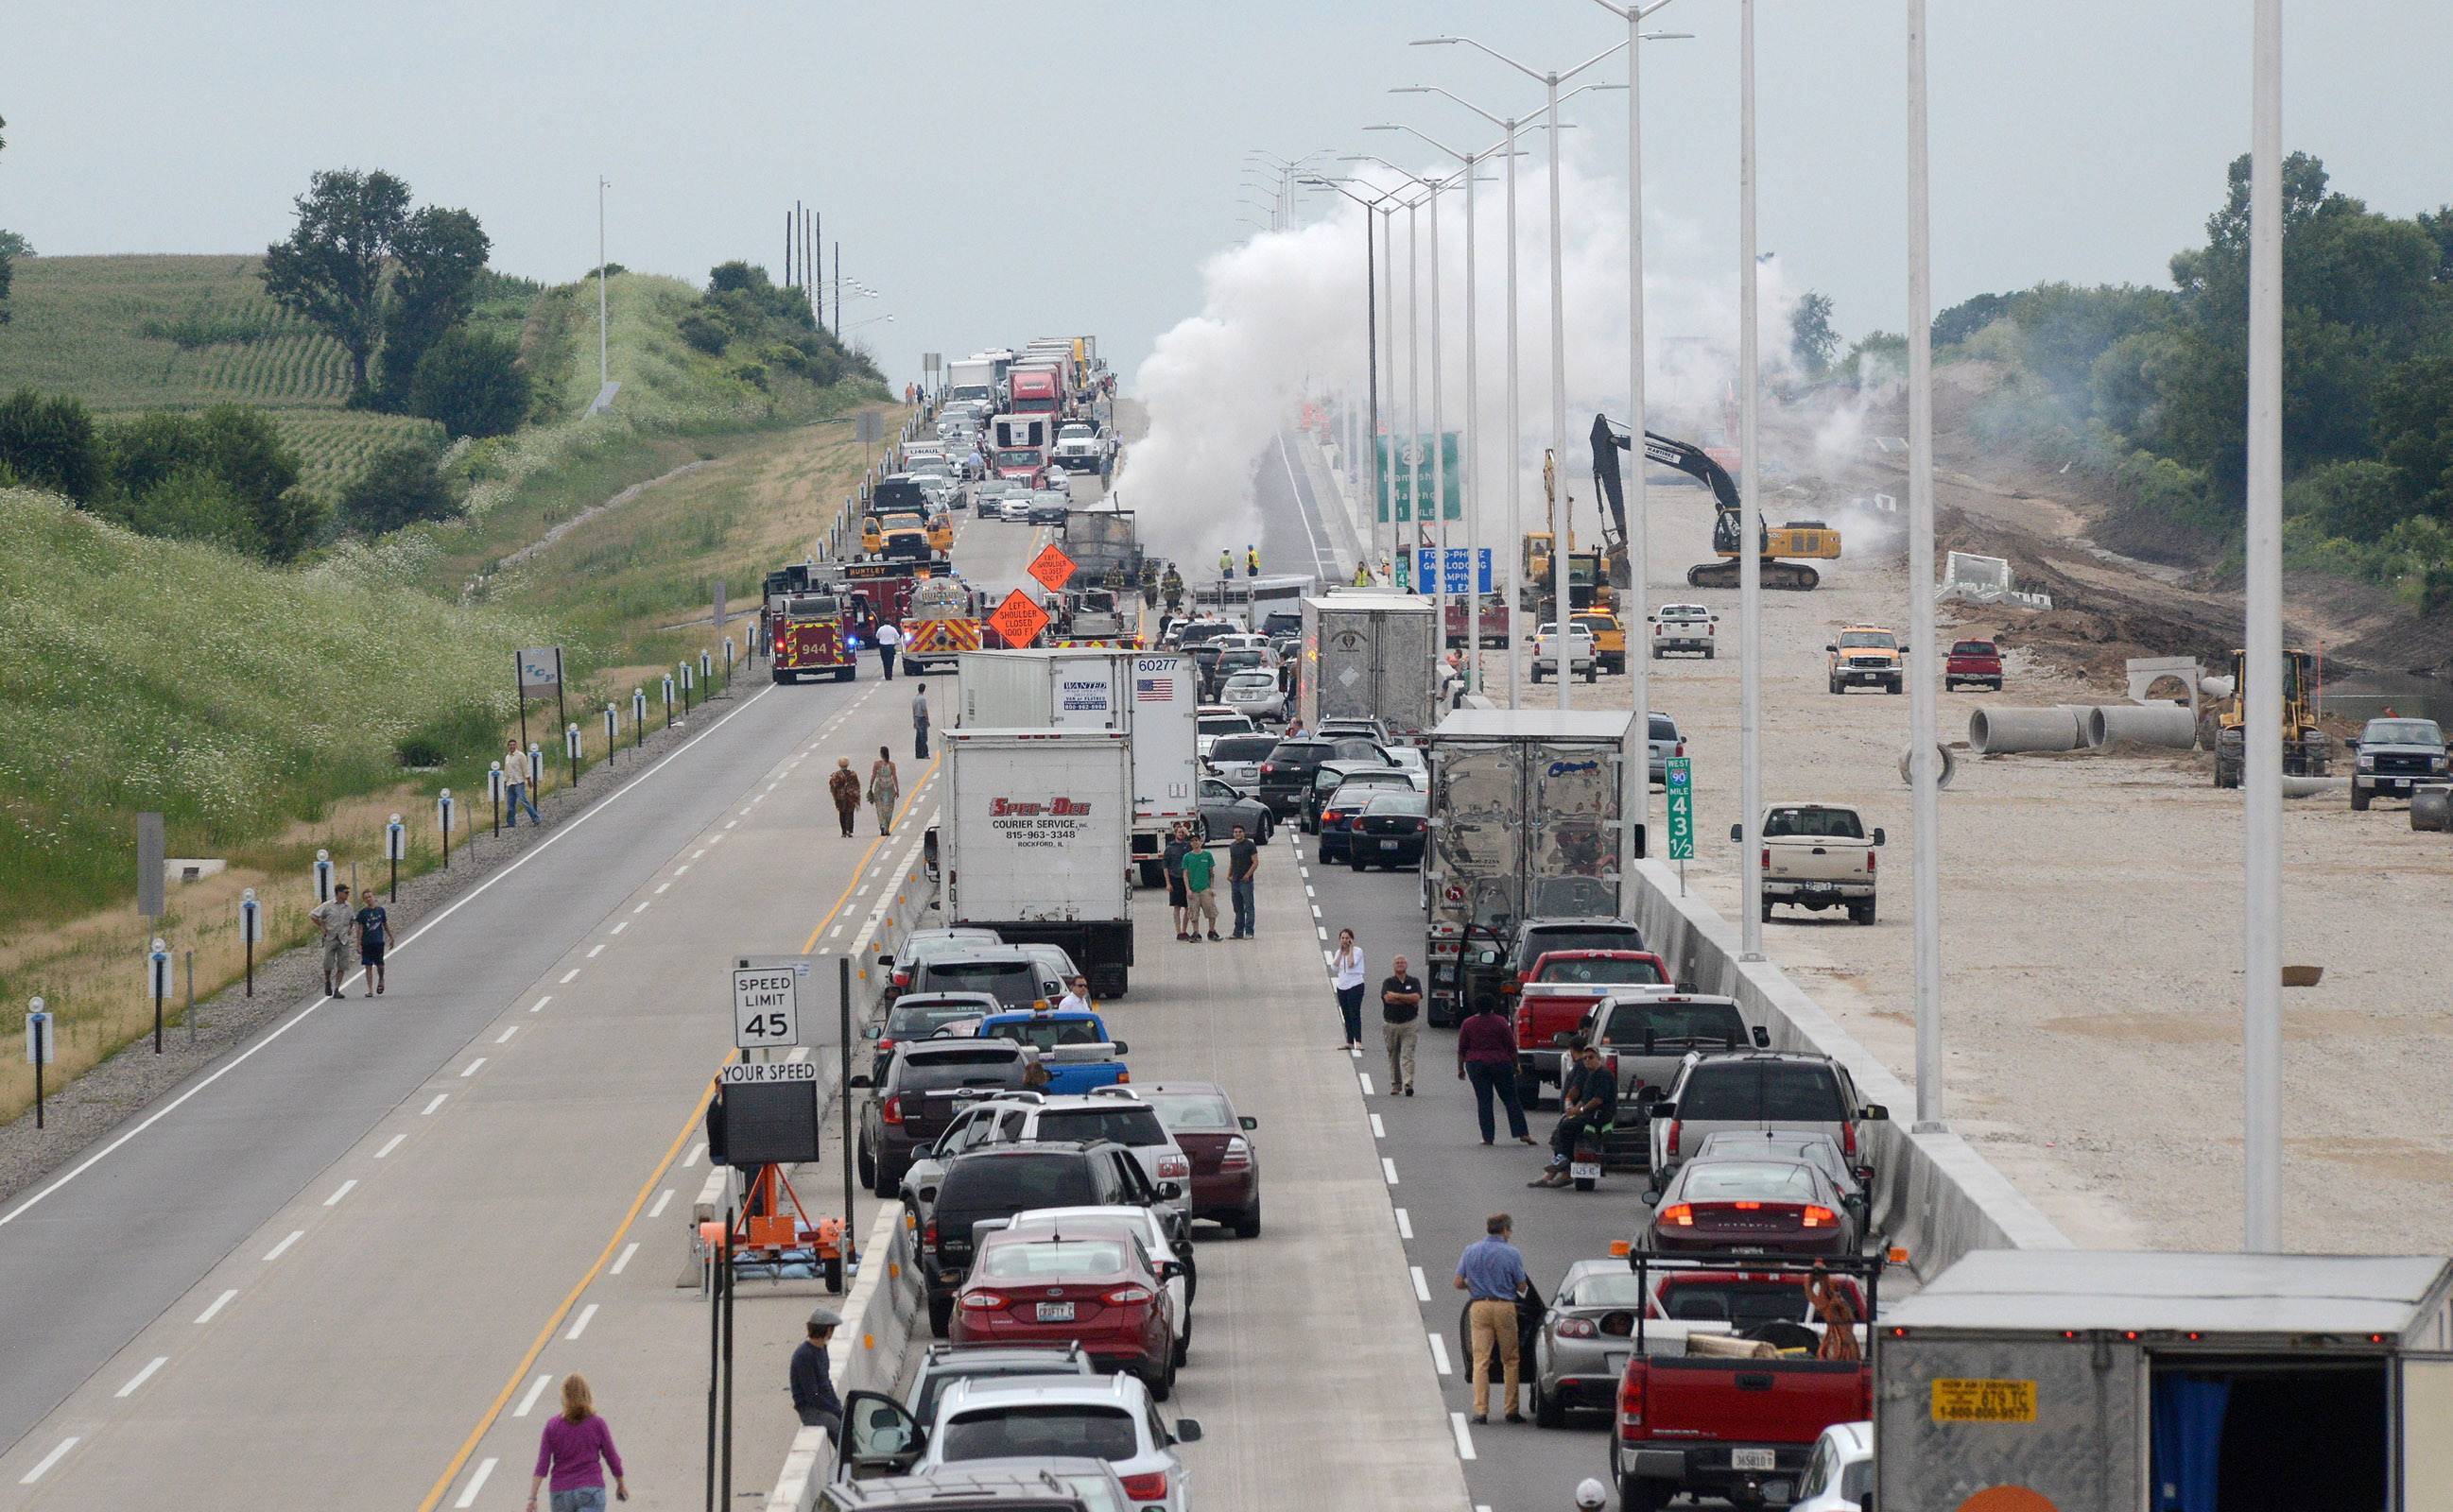 A semitrailer truck engulfed in flames causes a major traffic backup looking west on the Addams Tollway just west of the Brier Hill Road overpass.